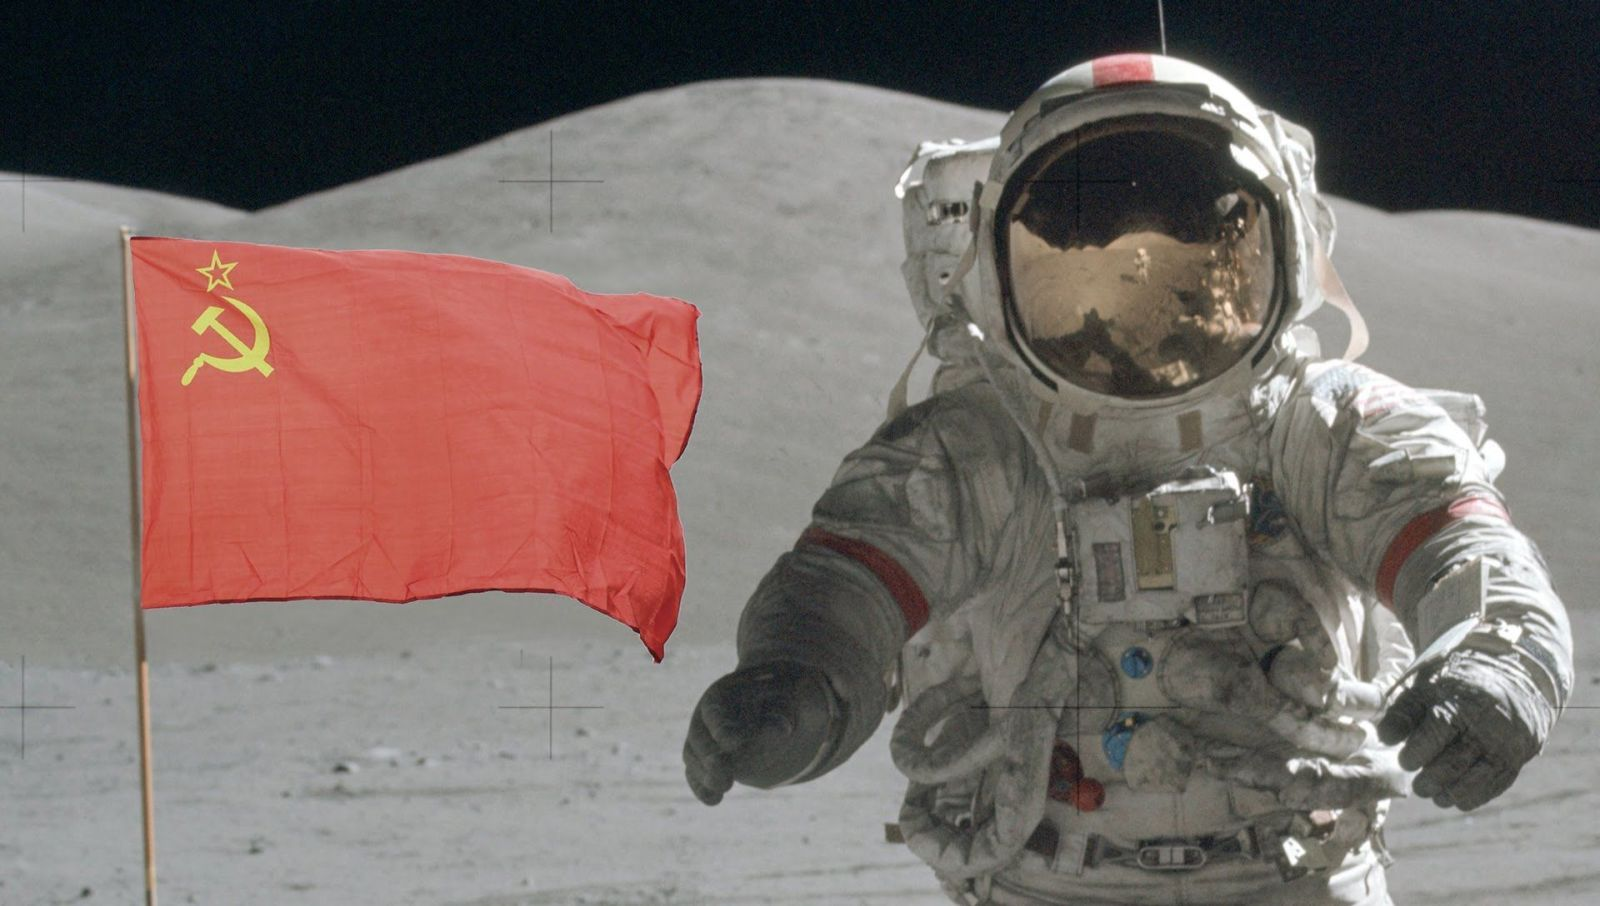 Why Didn't Russia Ever Make It to the Moon?